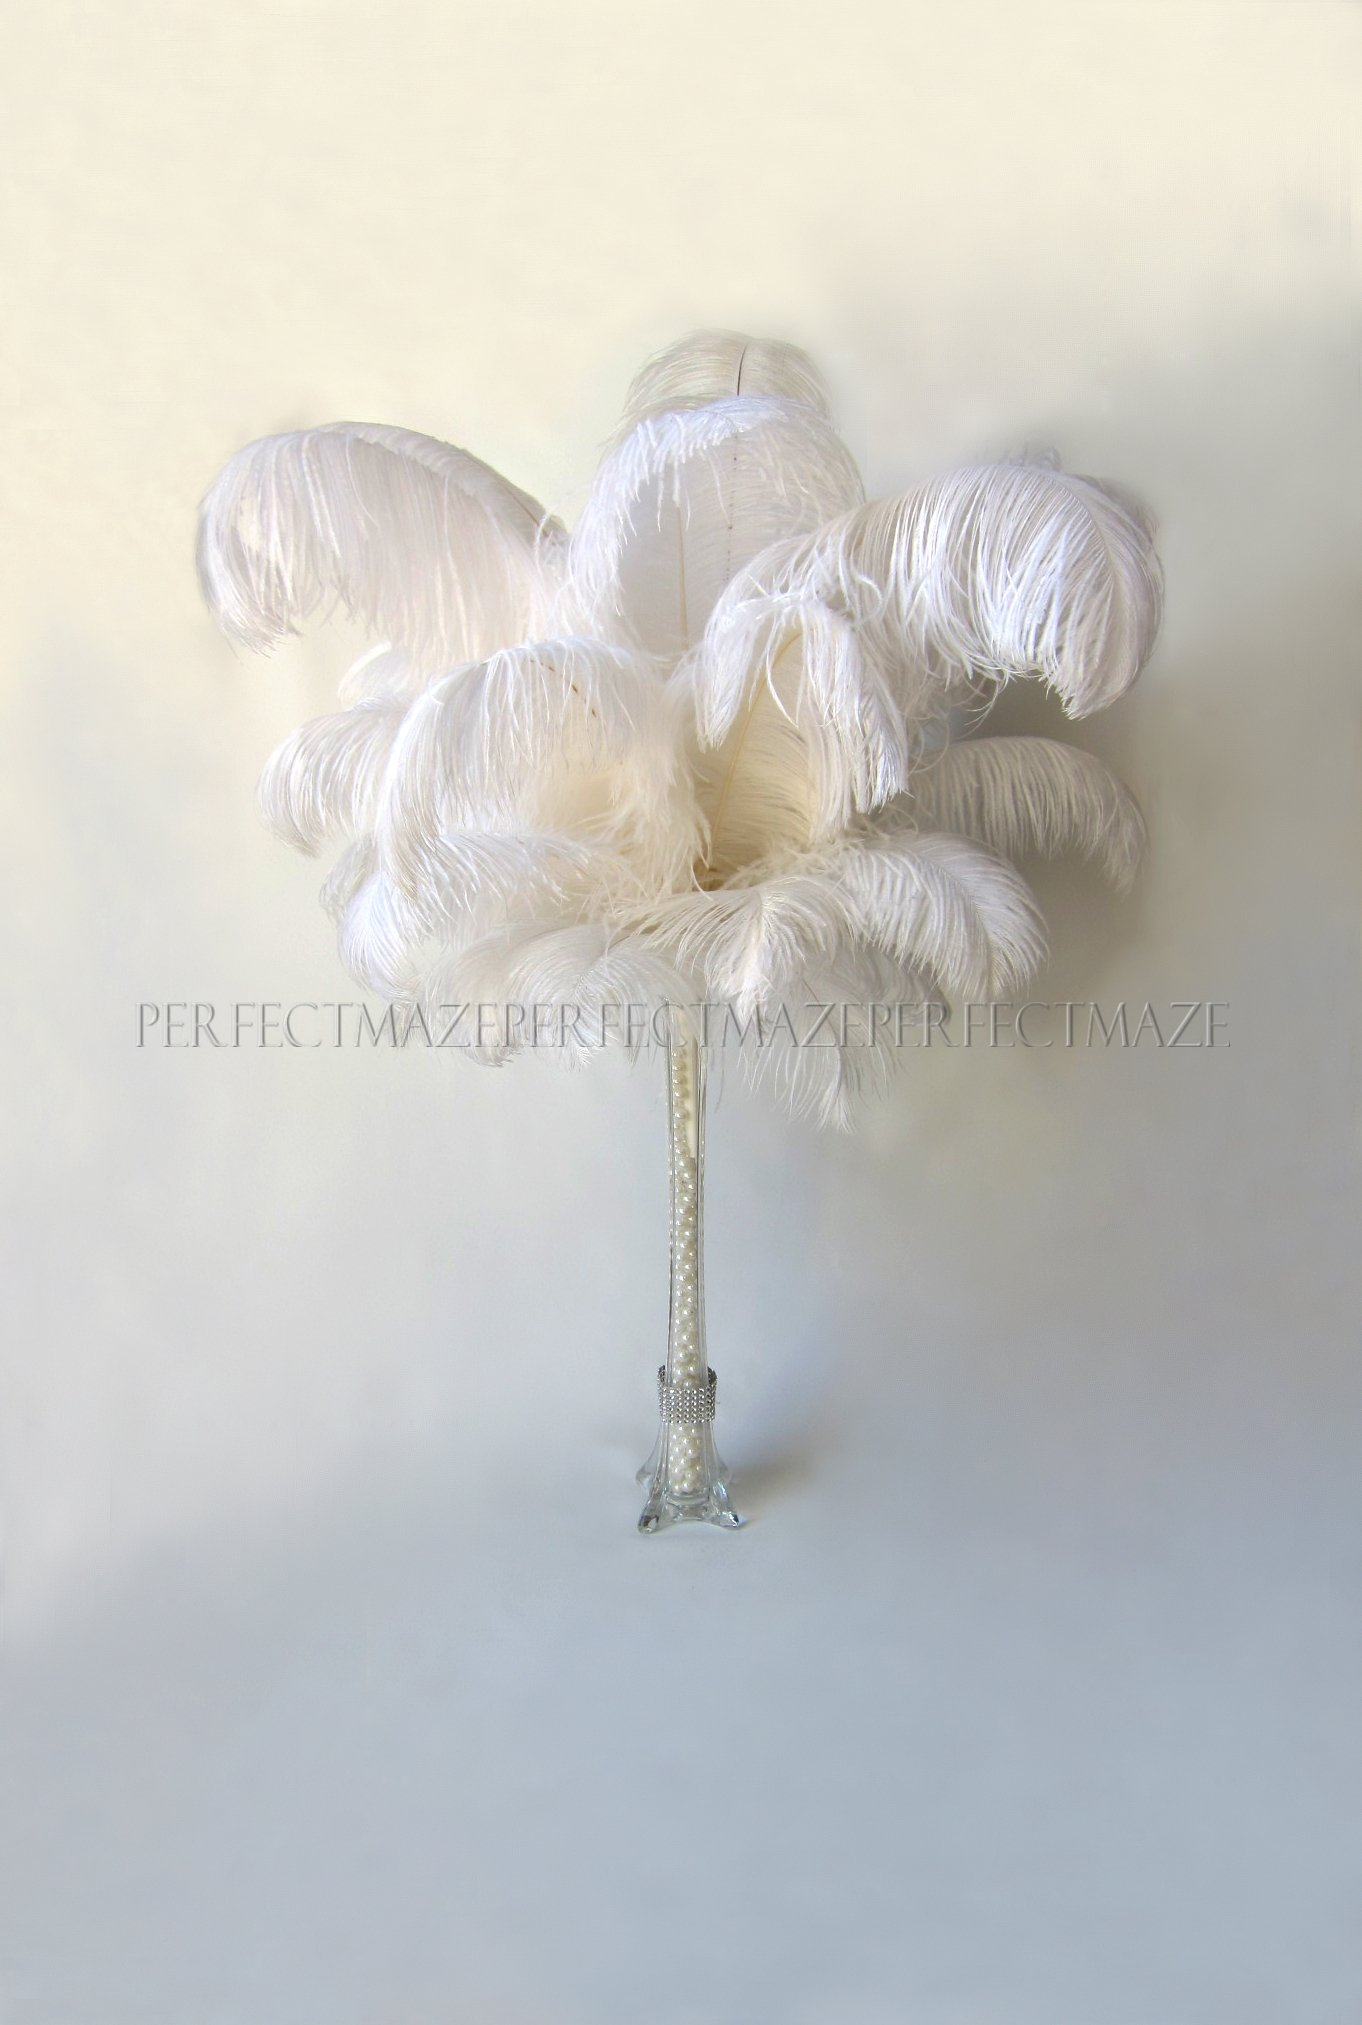 Perfectmaze 50 Piece 16''-18'' Ostrich Feather Premium Quality for Wedding Party Centerpiece Vase Decoration by Perfect Maze